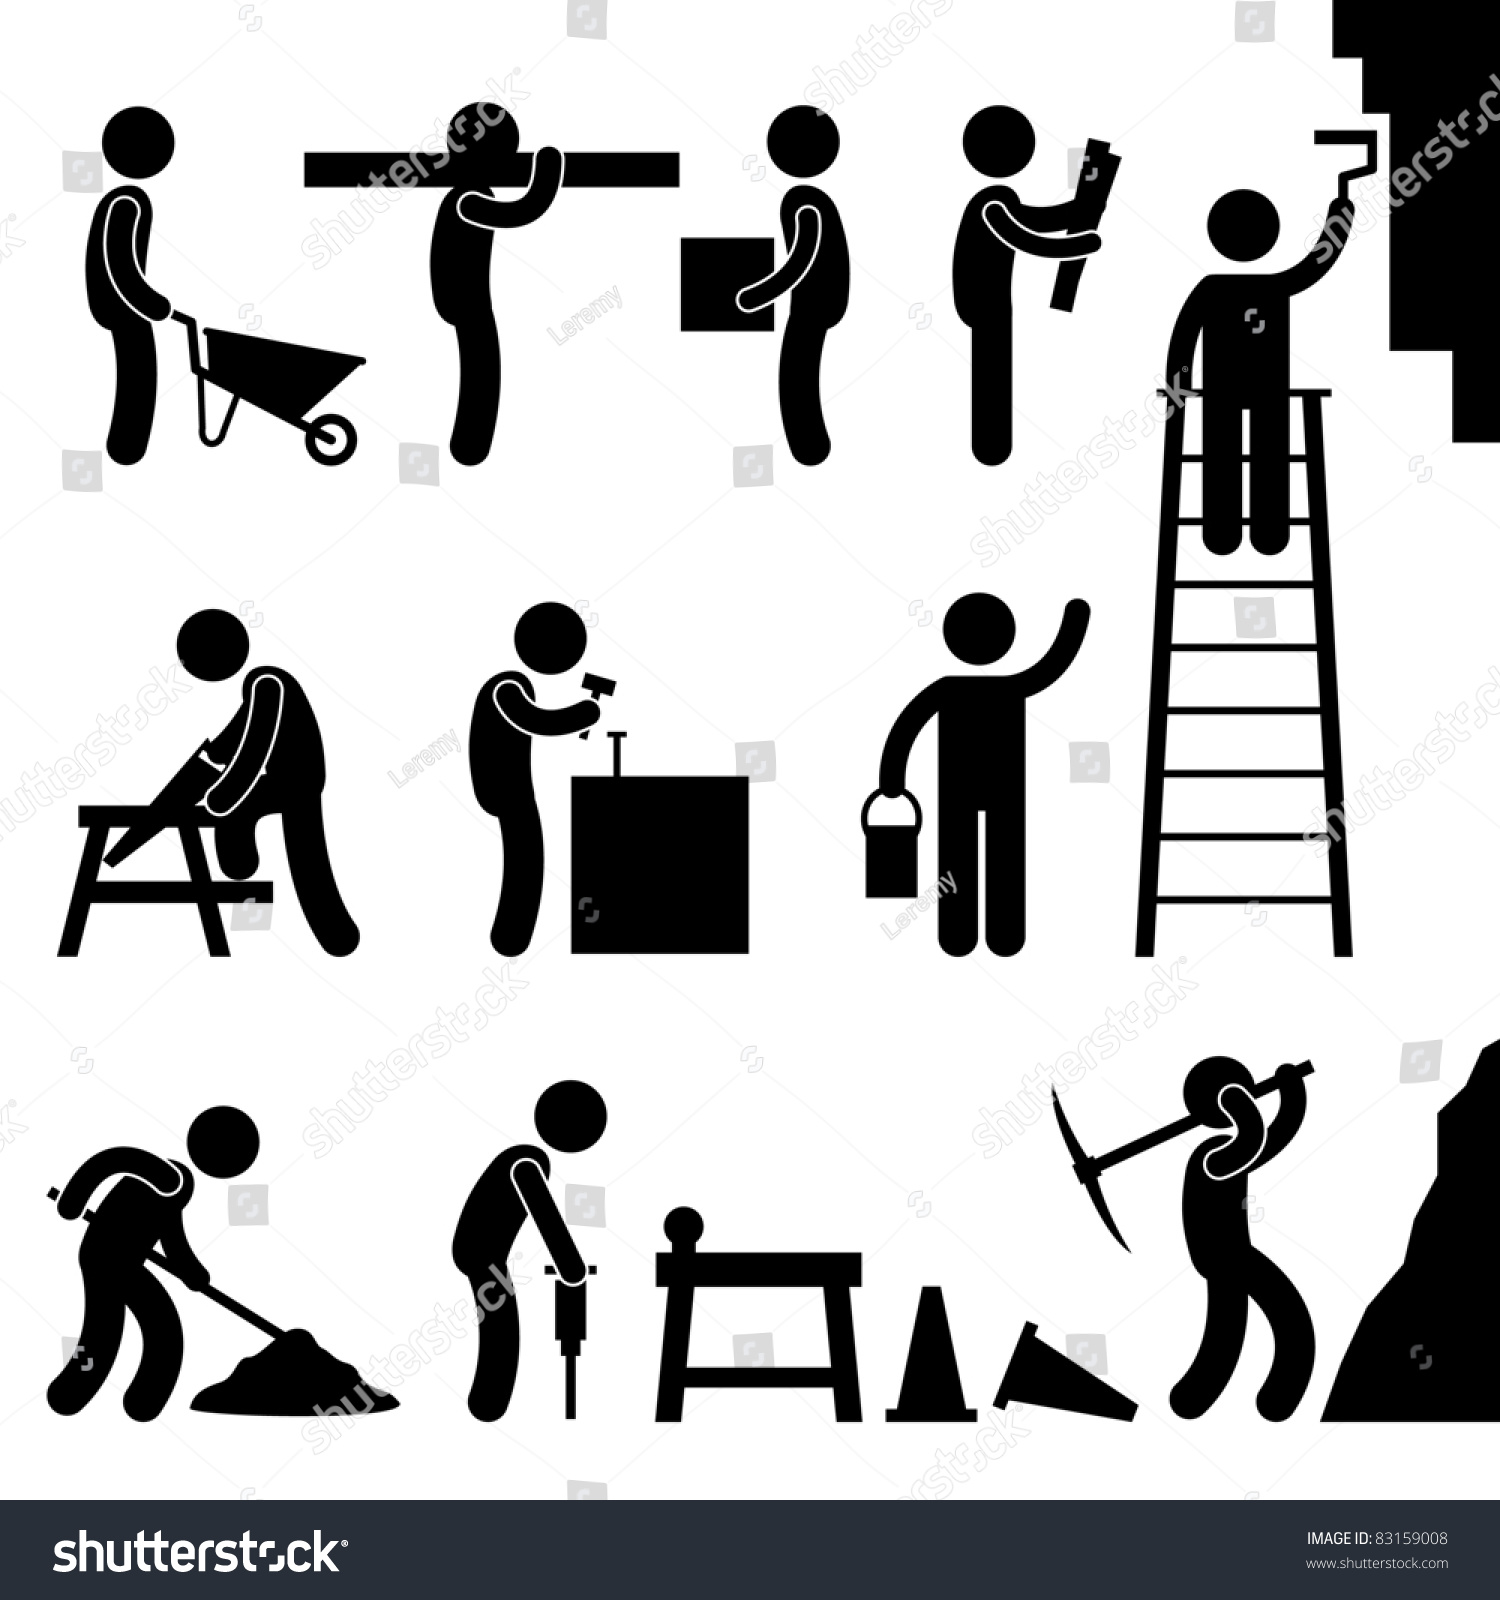 Man people working construction carrying building stock vector man people working construction carrying building industry painting sawing hard labor pictogram icon symbol sign biocorpaavc Images